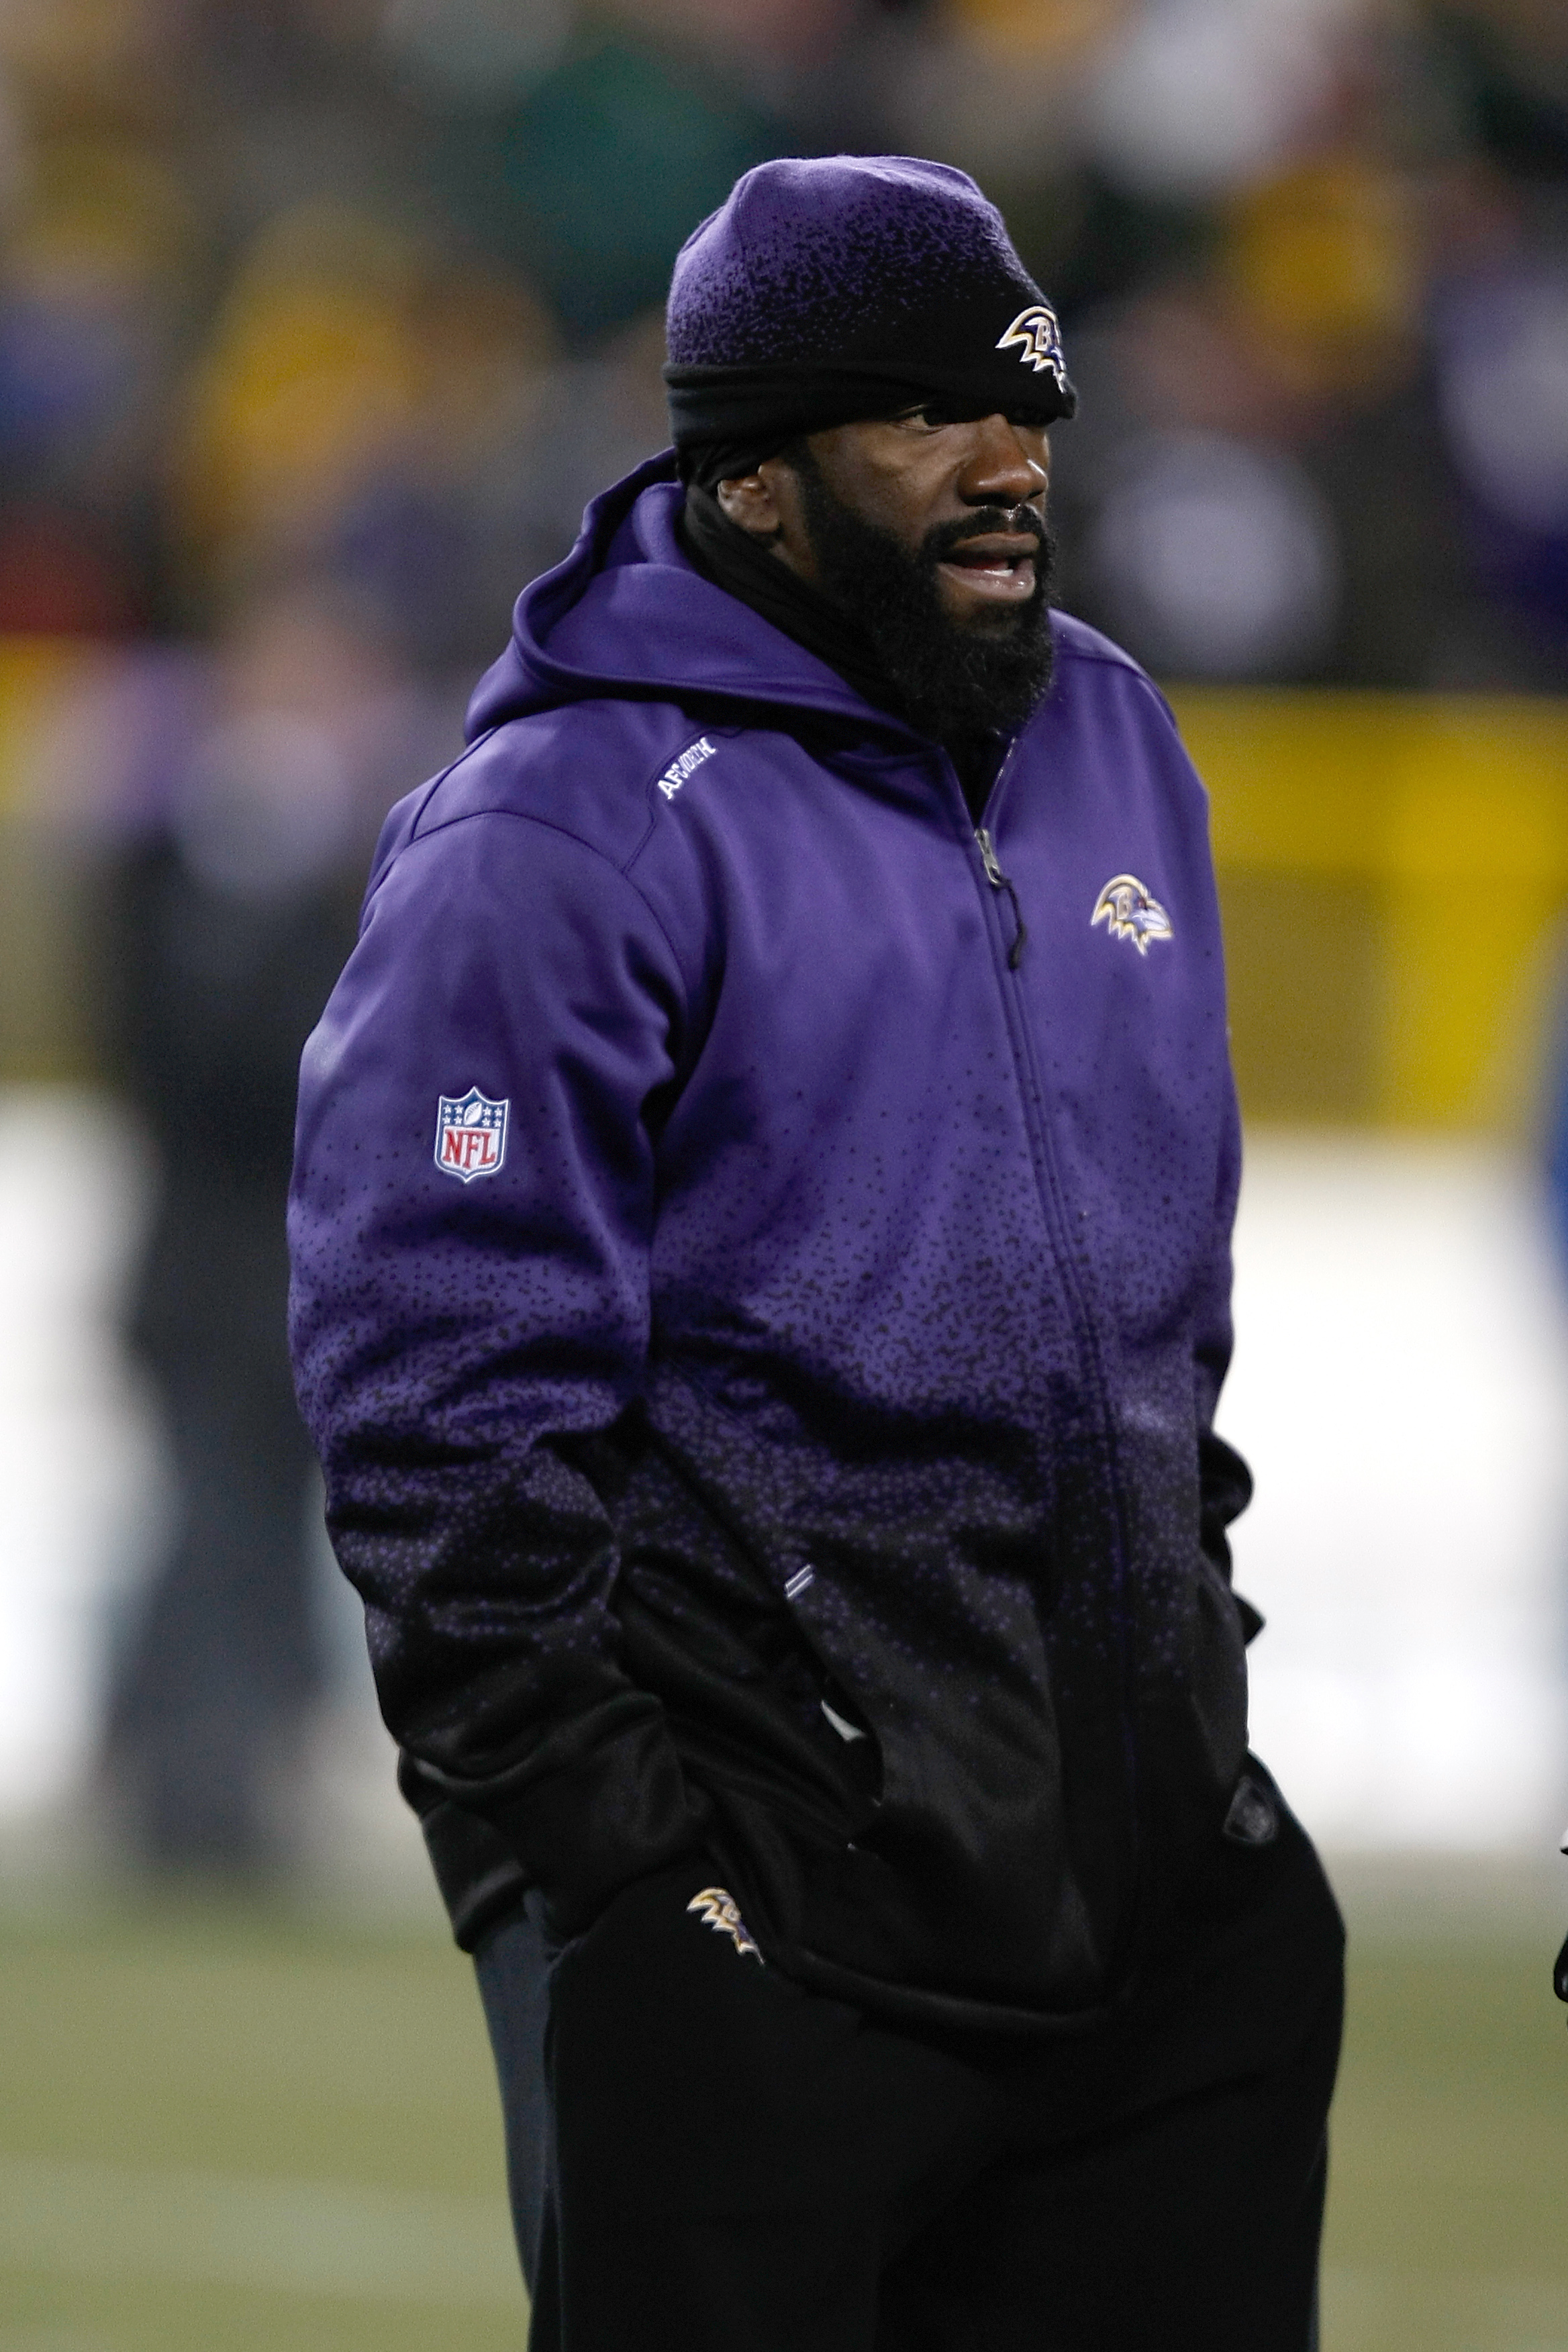 GREEN BAY, WI - DECEMBER 7: Defensive back Ed Reed #20 of the Baltimore Ravens stands on the field in warm ups after being deactivated from the game due to injury prior to the game against the Green Bay Packers at Lambeau Field on December 7, 2009 in Gree